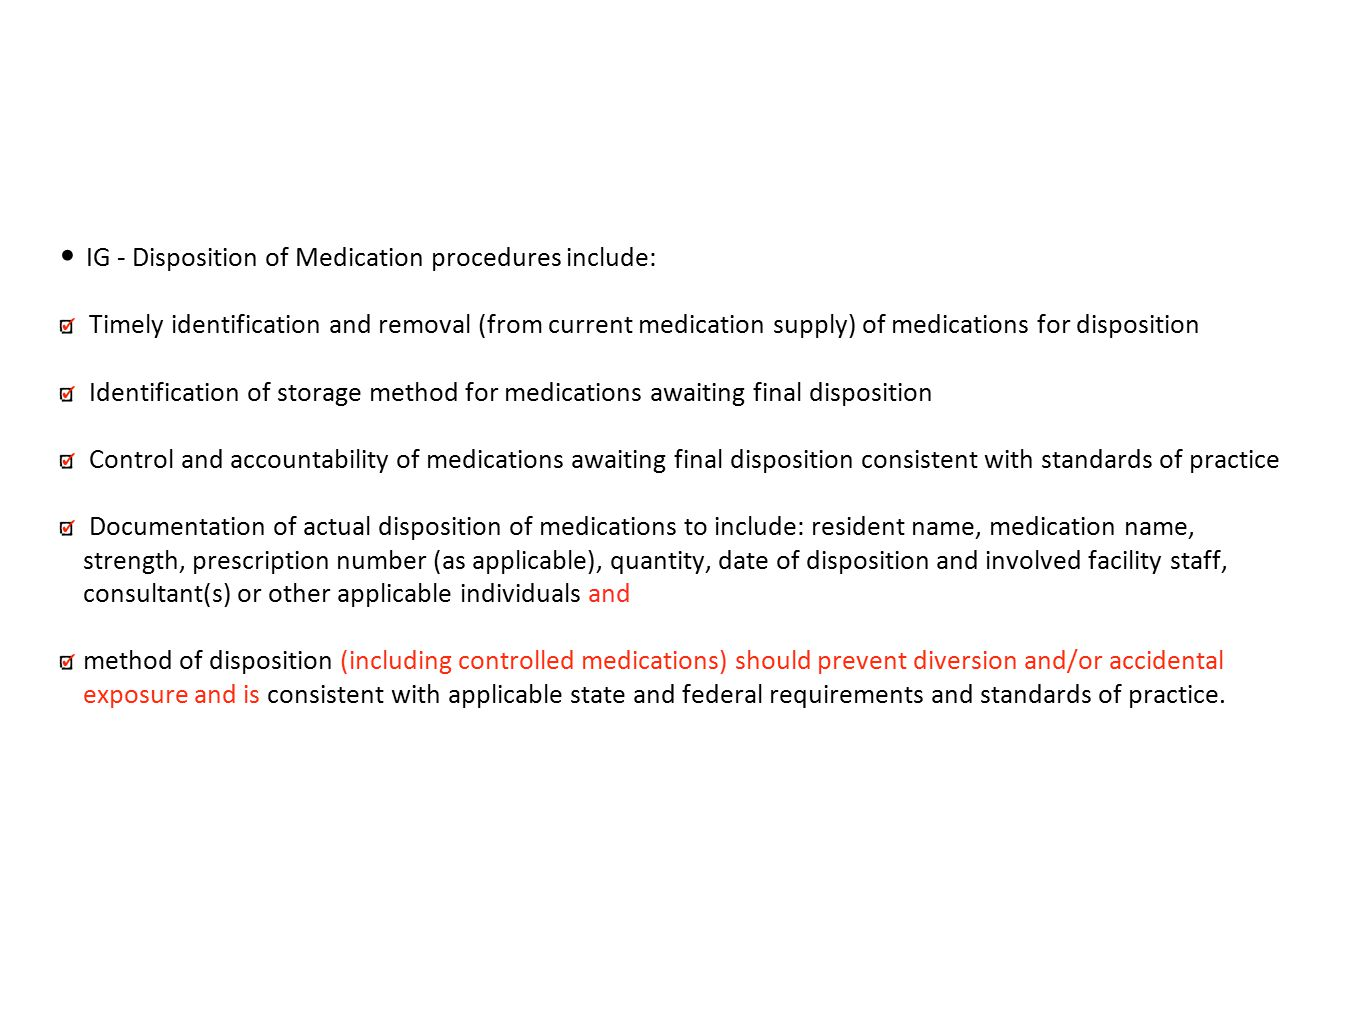 IG - Disposition of Medication procedures include: Timely identification and removal (from current medication supply) of medications for disposition Identification of storage method for medications awaiting final disposition Control and accountability of medications awaiting final disposition consistent with standards of practice Documentation of actual disposition of medications to include: resident name, medication name, strength, prescription number (as applicable), quantity, date of disposition and involved facility staff, consultant(s) or other applicable individuals and method of disposition (including controlled medications) should prevent diversion and/or accidental exposure and is consistent with applicable state and federal requirements and standards of practice.